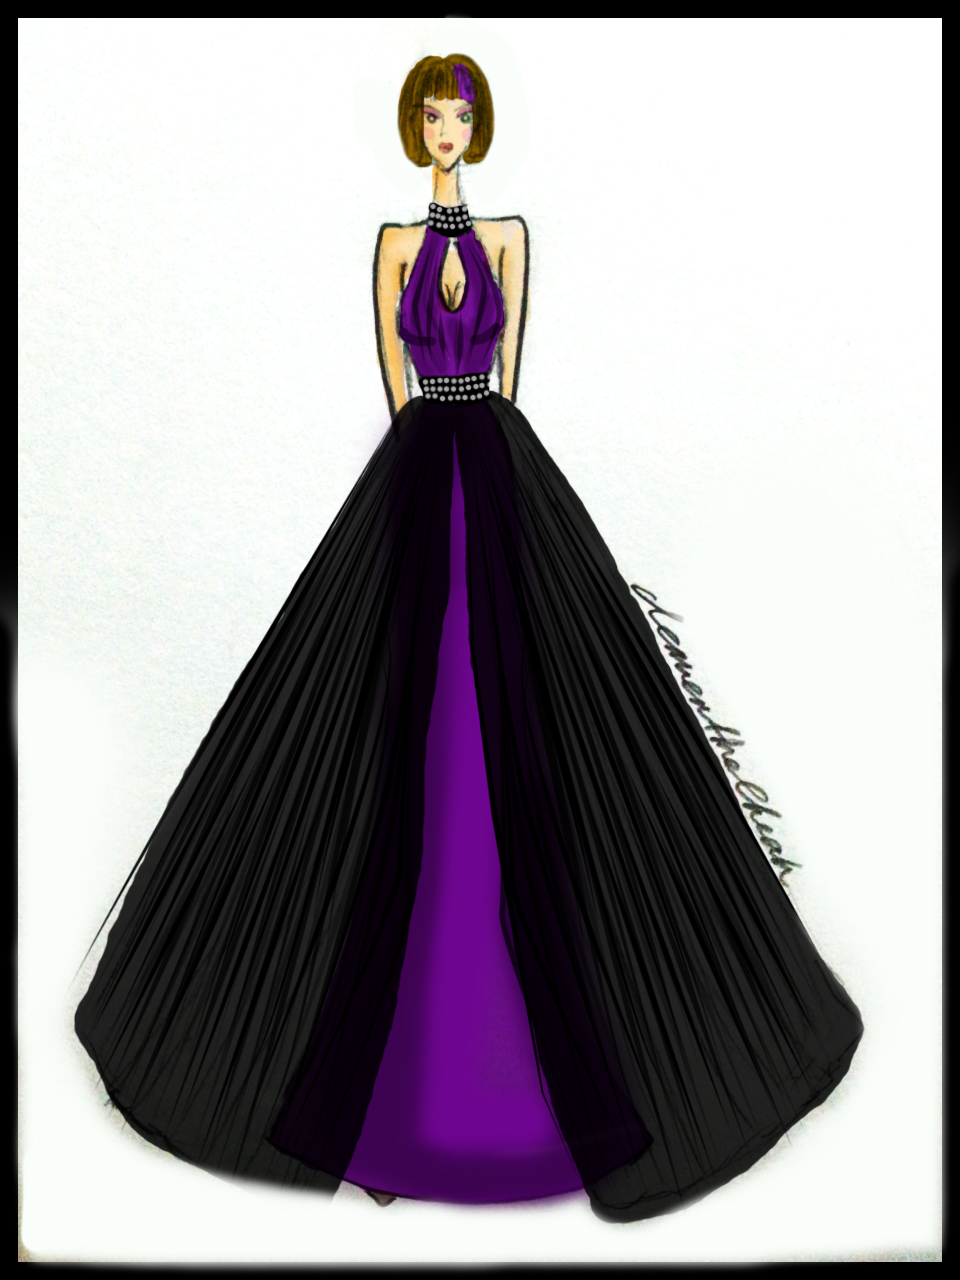 Clementine Cheah: Fashion Illustration : Purple Ball Gown